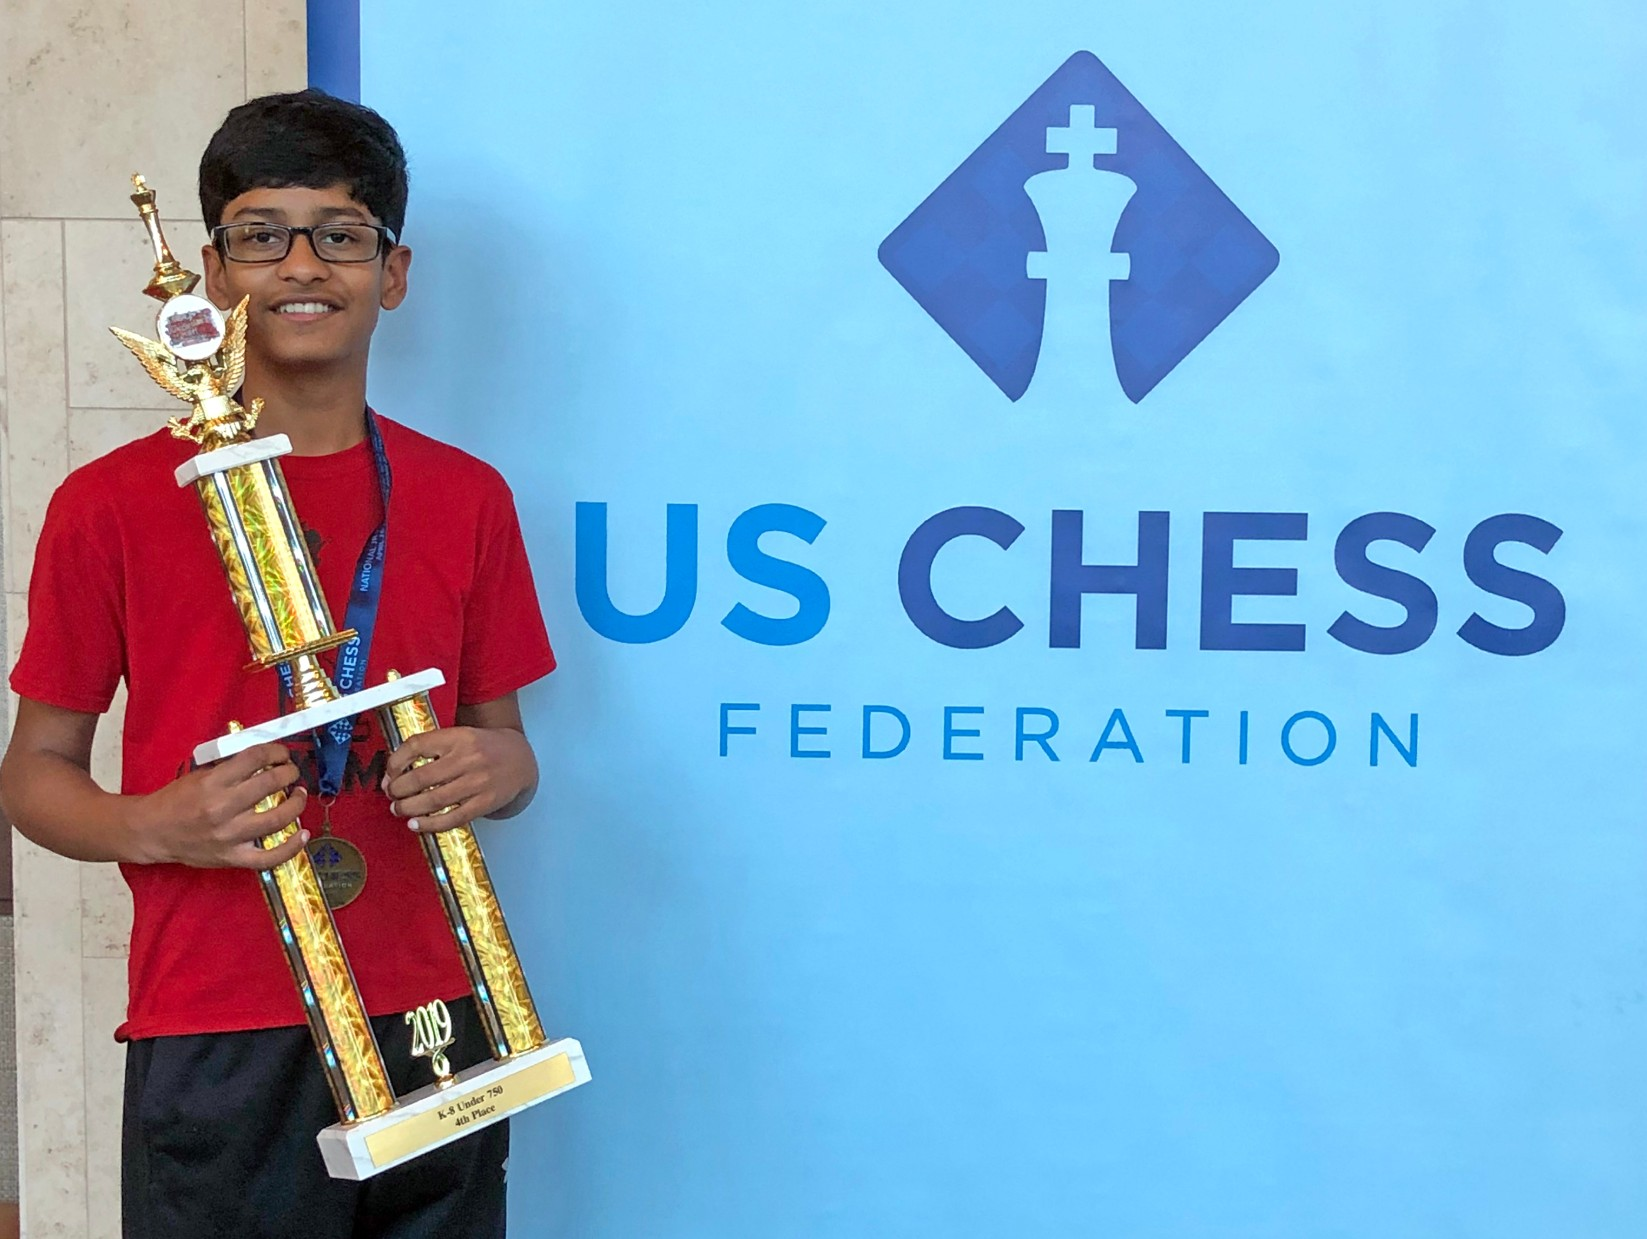 Two middle schoolers compete on grand stages